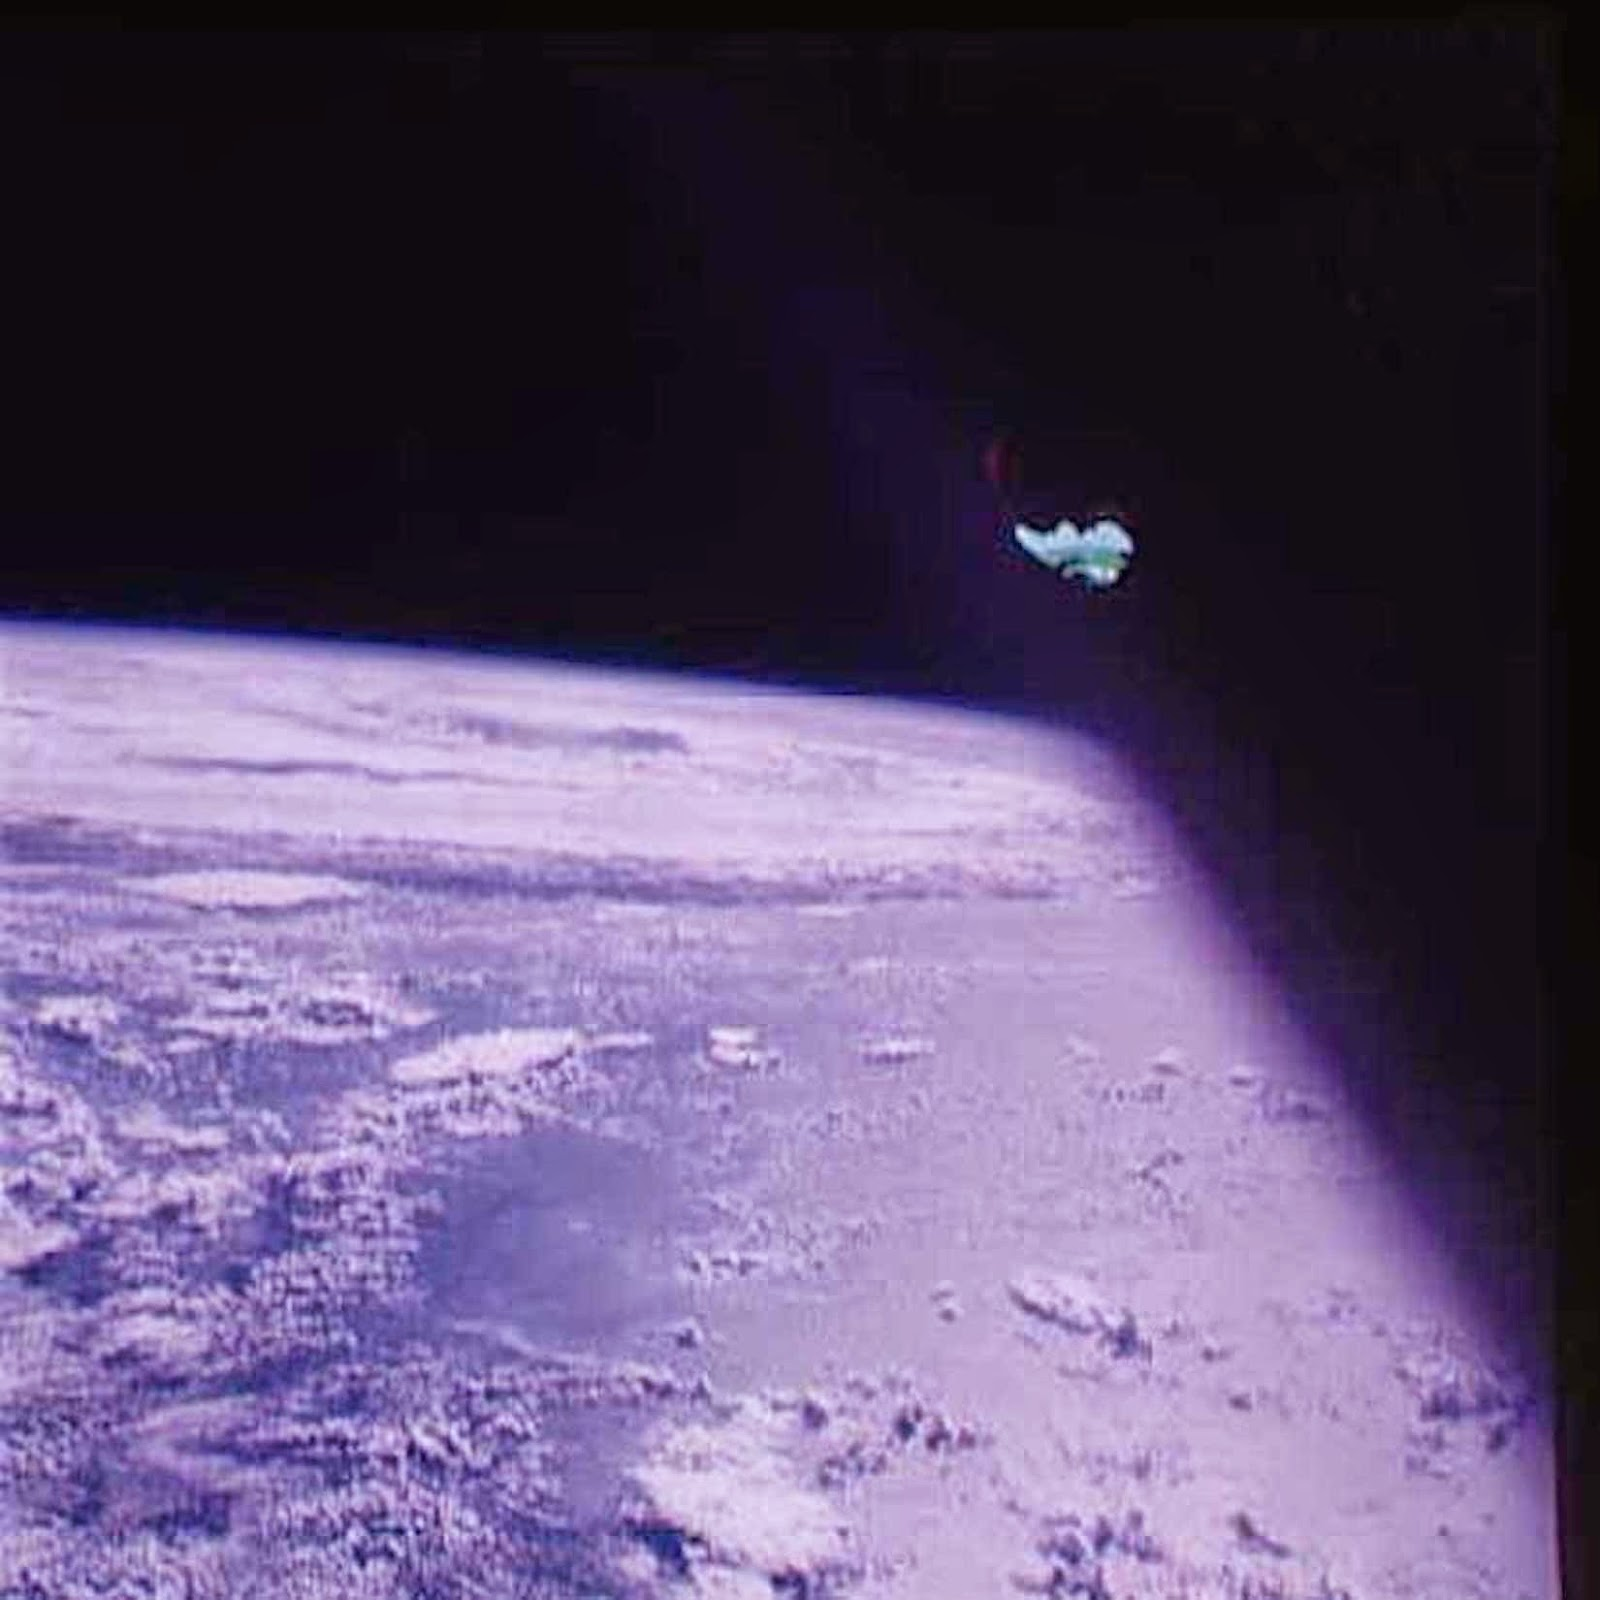 Alien Ship Seen Close Up On Apollo 7 Mission, NASA Source, Jan 2015 UFO Sighting News.